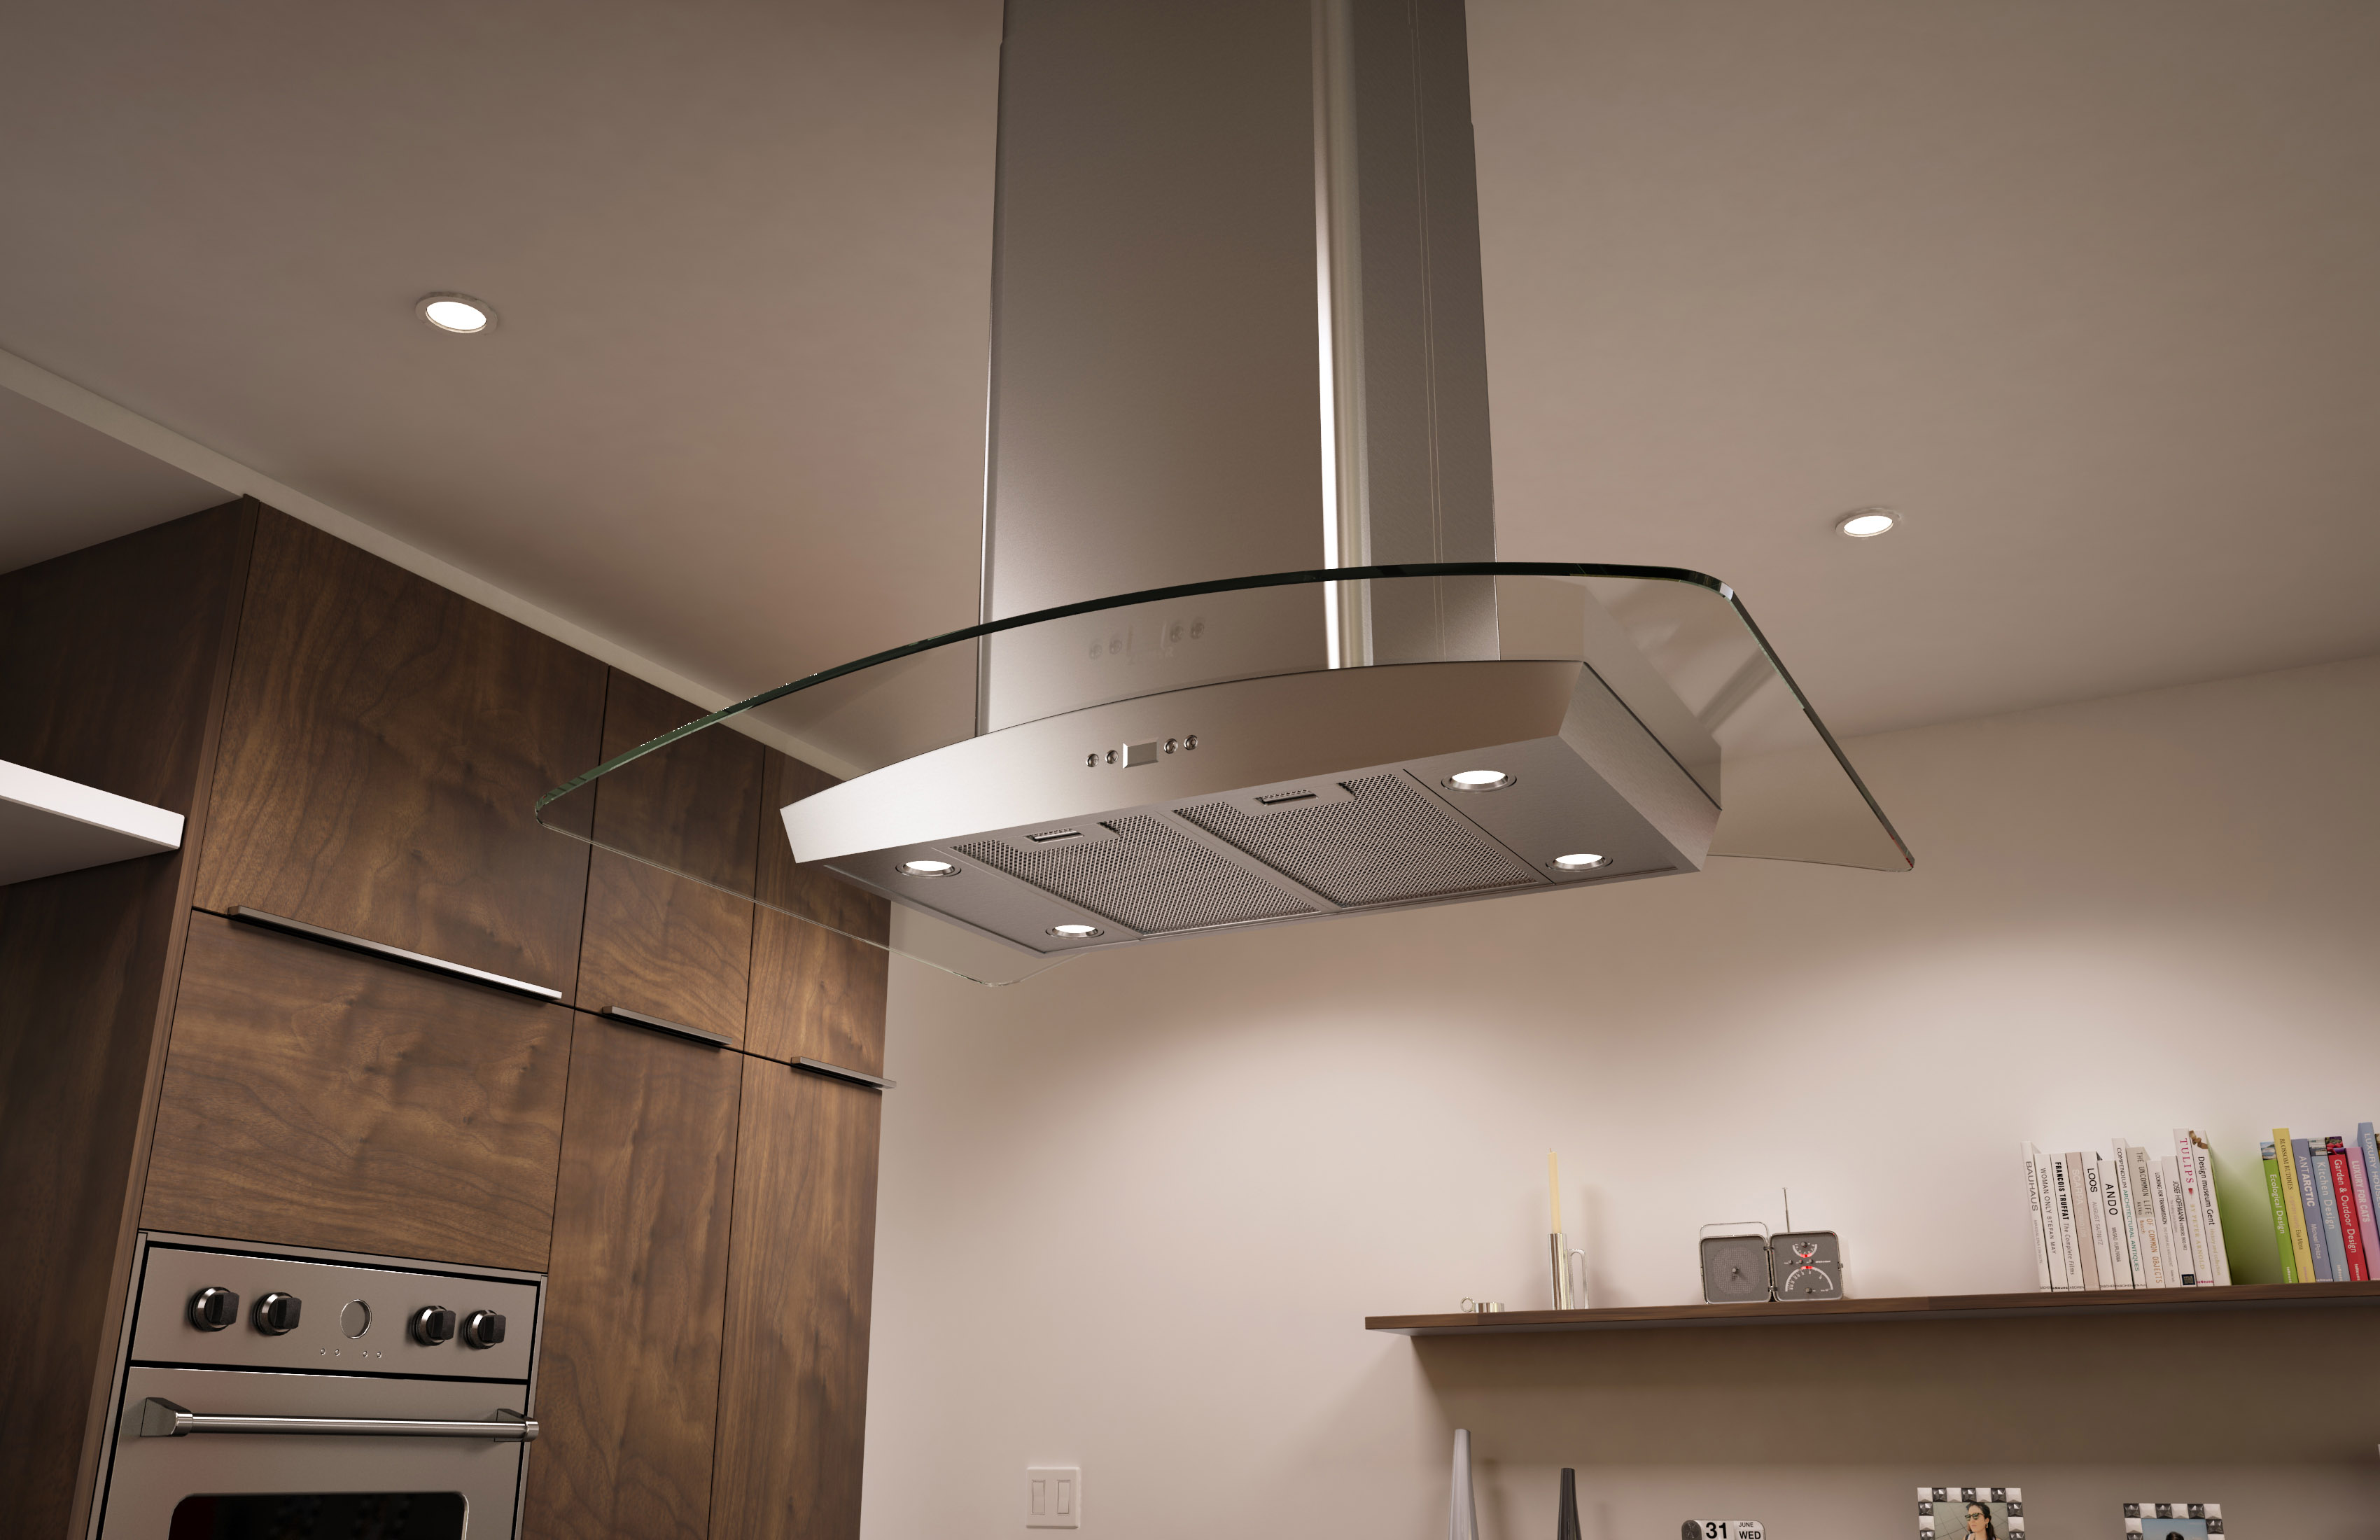 Milano Island Glass Range Hood maintains its classic curved canopy design; now with Zephyru0027s DCBL Suppression System.™ & Zephyr® Upgrades Its Core Collection u2013 Introduces Next Generation ...